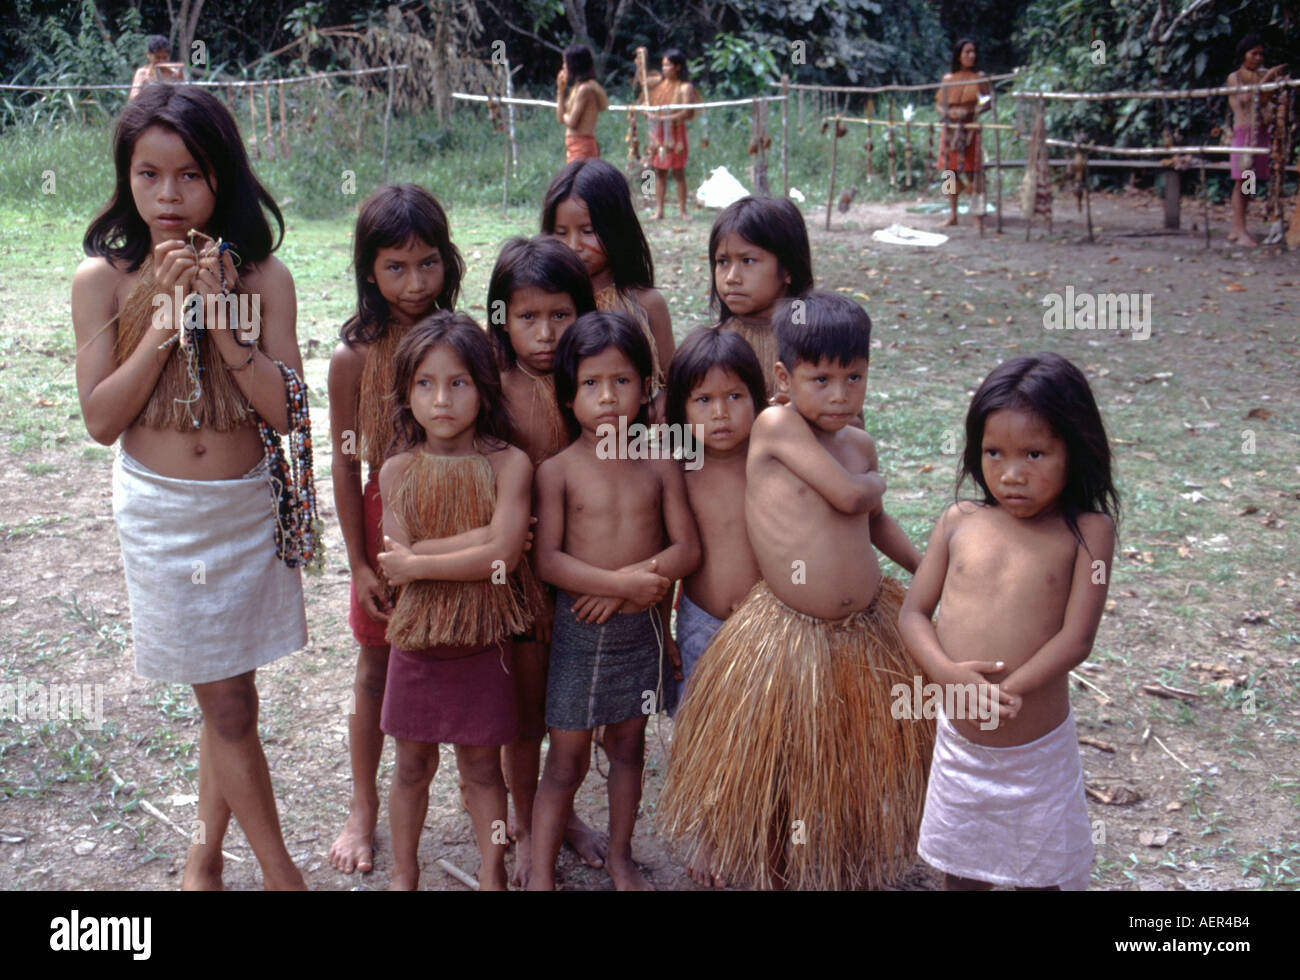 Children From The Yagua Tribe In Amazon Region Of Peru